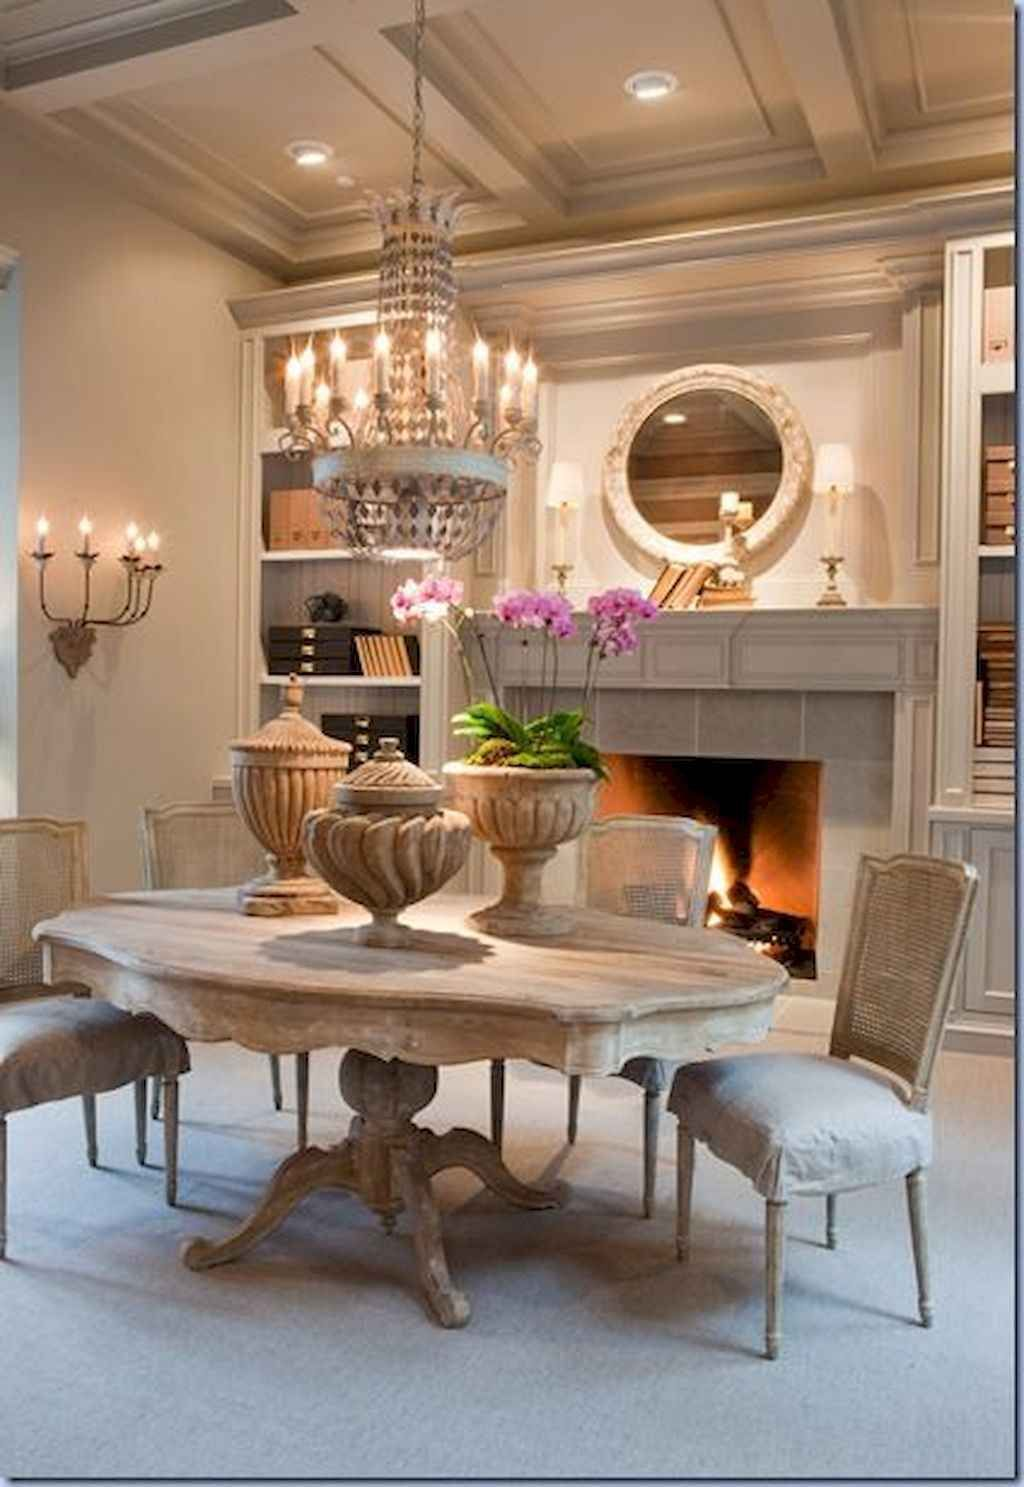 80 Modern French Country Dining Room Table Decor Ideas Spaciroom Com French Country Dining Room Decor French Country Dining Room Country Dining Rooms